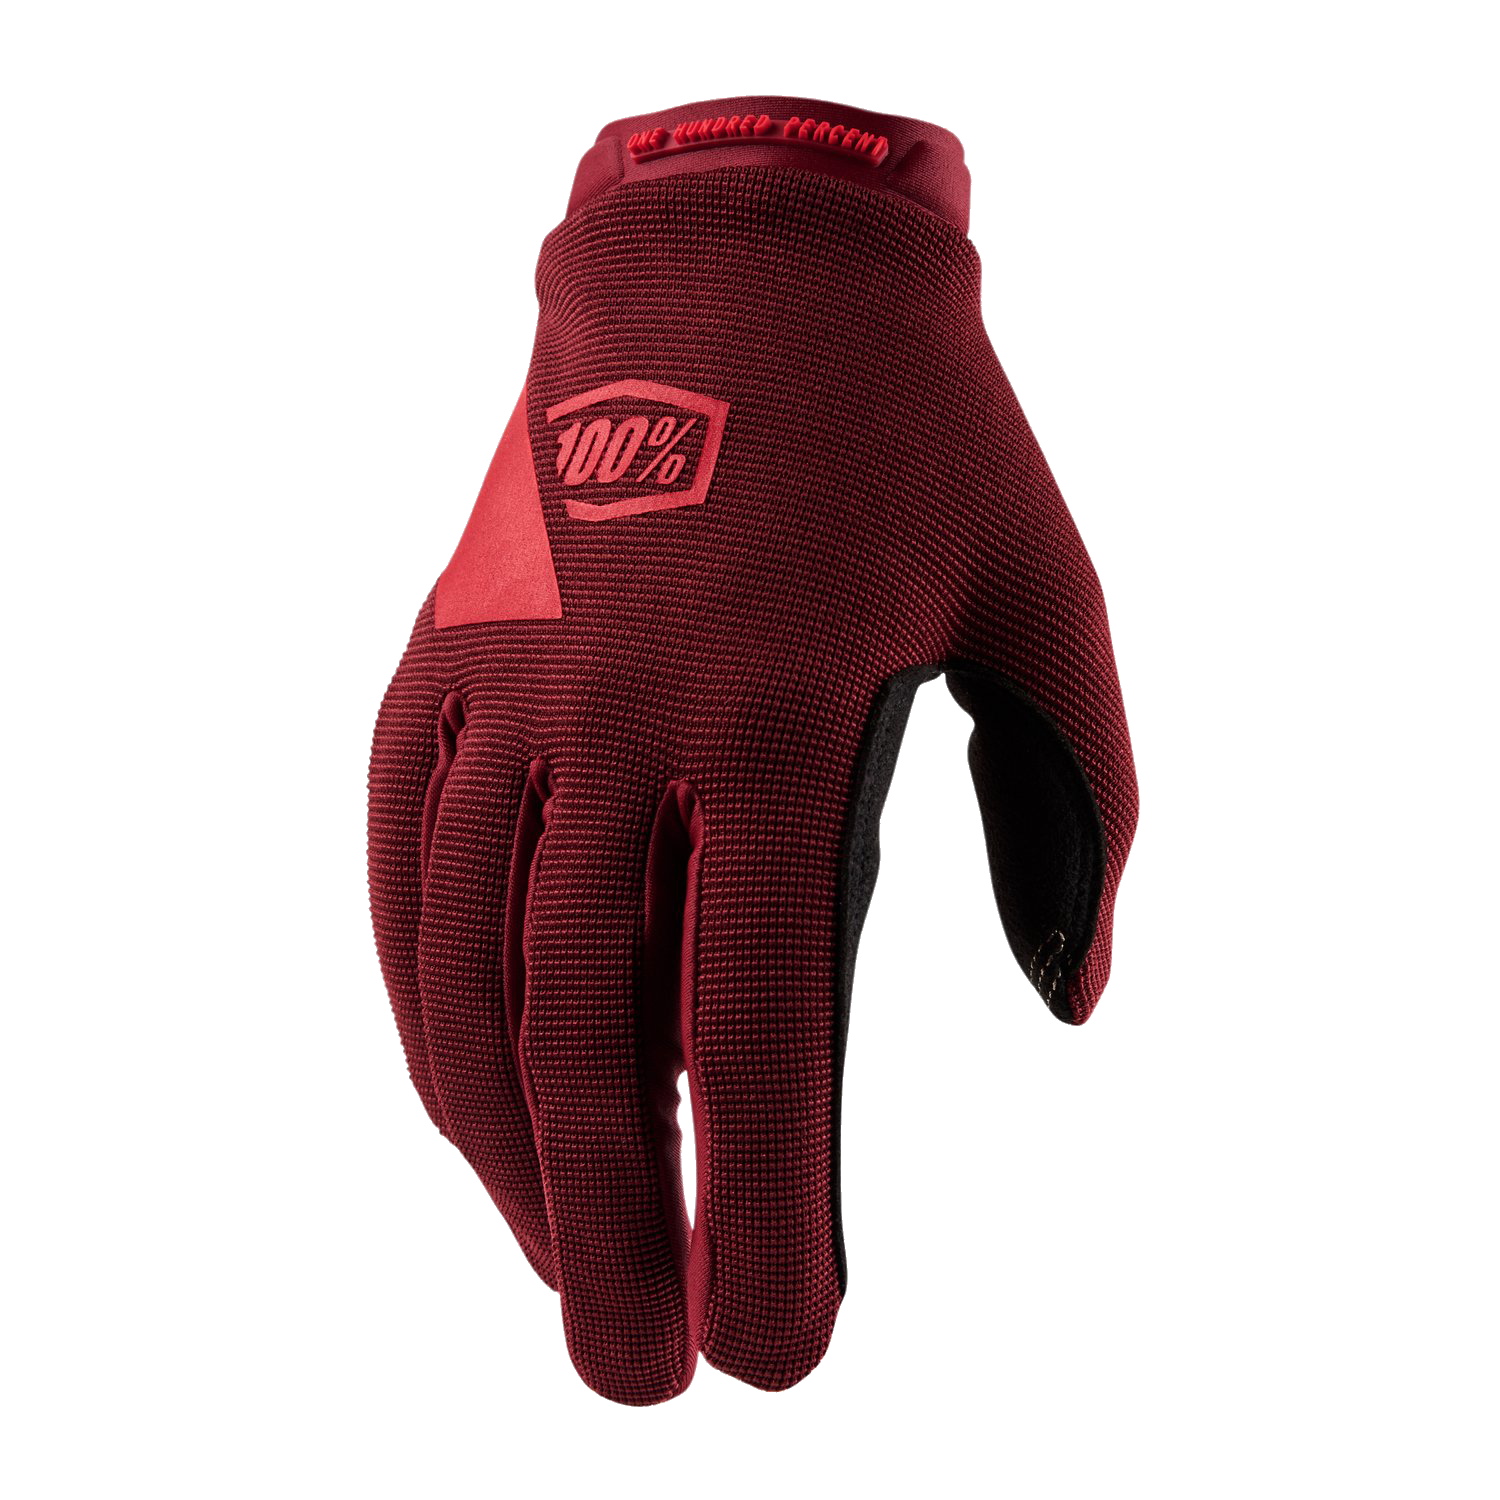 100% Ride Camp Gloves / Women's-3